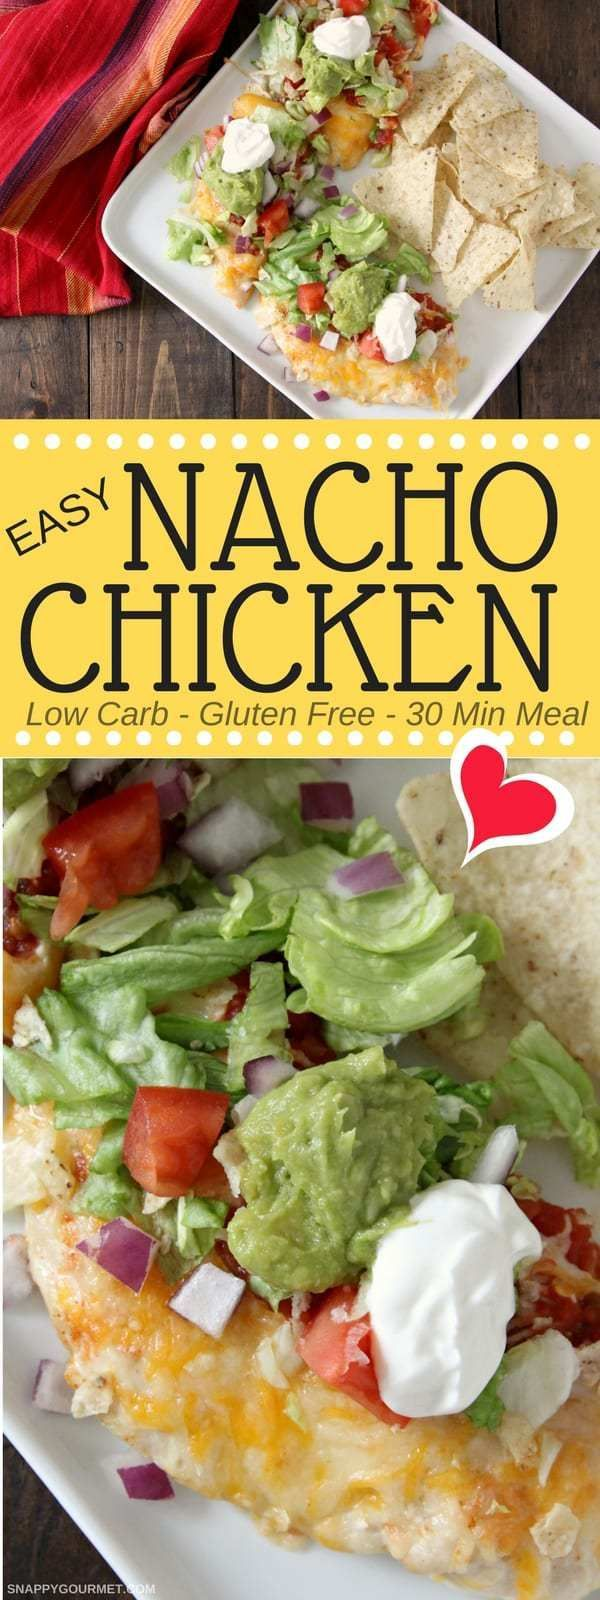 Easy Nacho Chicken - best low carb baked chicken recipe. Like loaded nachos but with chicken! Homemade 30 minute meal that is kid friendly and parent approved! #LowCarb #Chicken #CincoDeMayo #SnappyGourmet via @snappygourmet